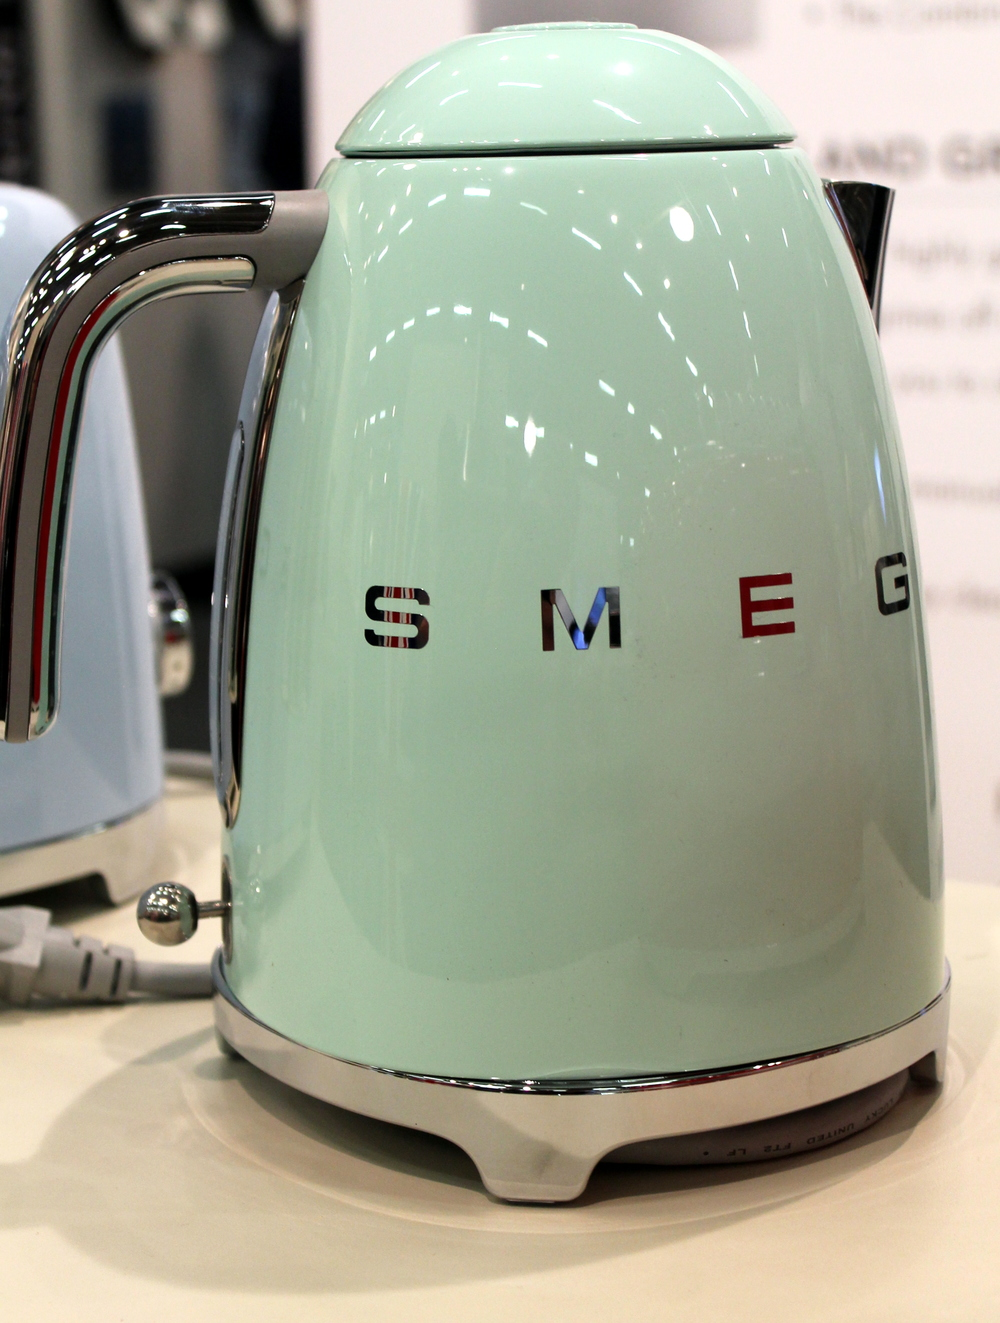 Smeg  is an Italian company has captured my heart and attention. What beautiful design and such graceful looking products ranging from tea kettles to blenders and mixers to ovens to beverage coolers. I will write more on them at a later time.